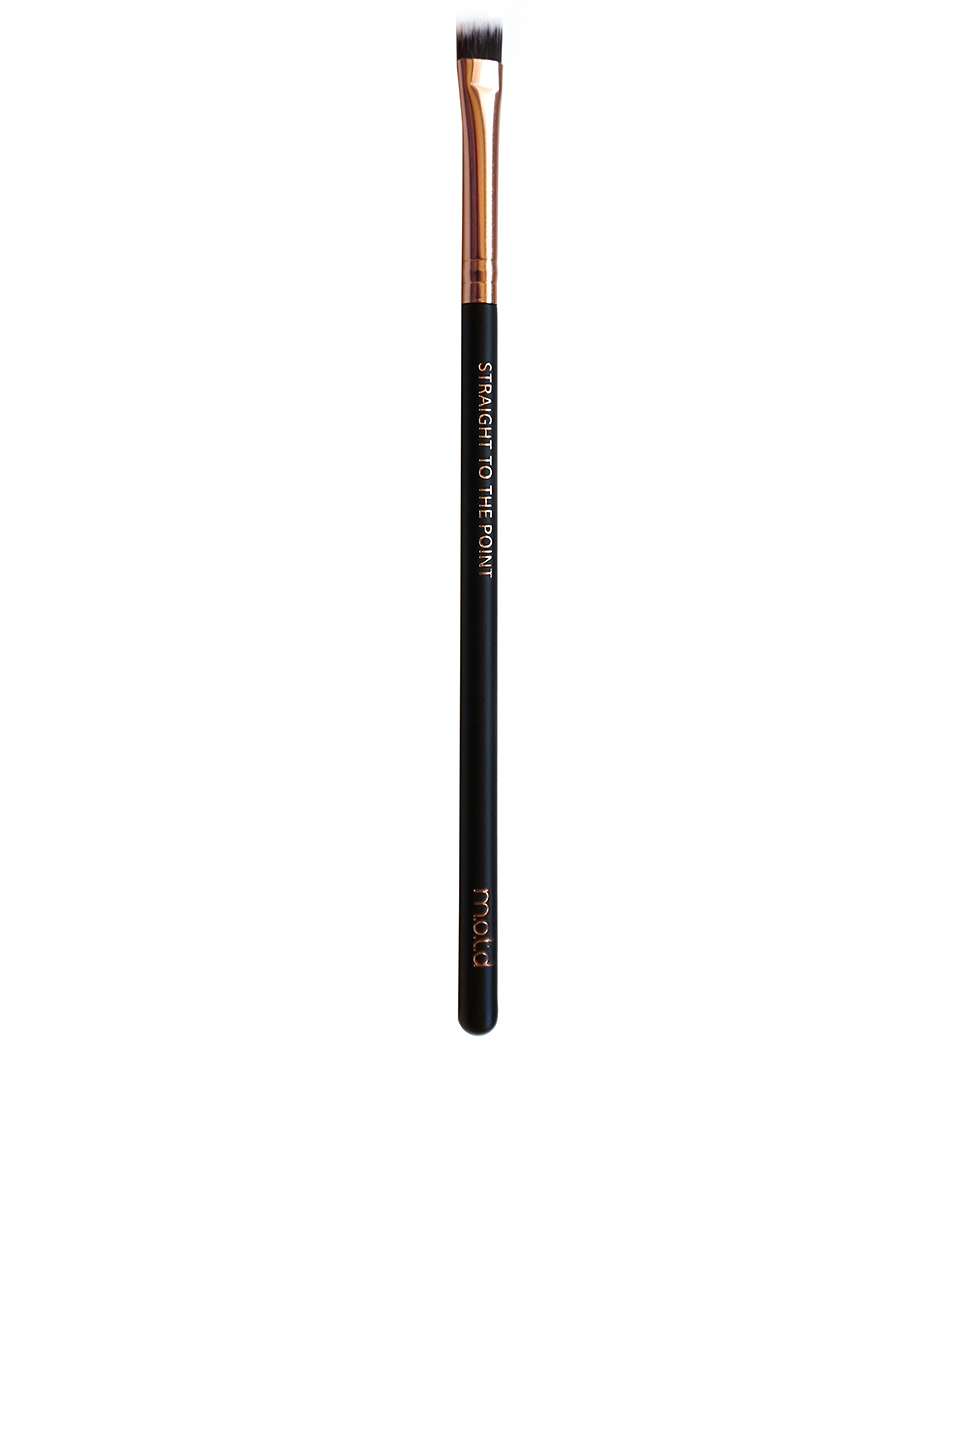 M.O.T.D. Cosmetics Straight To The Point Brush in All